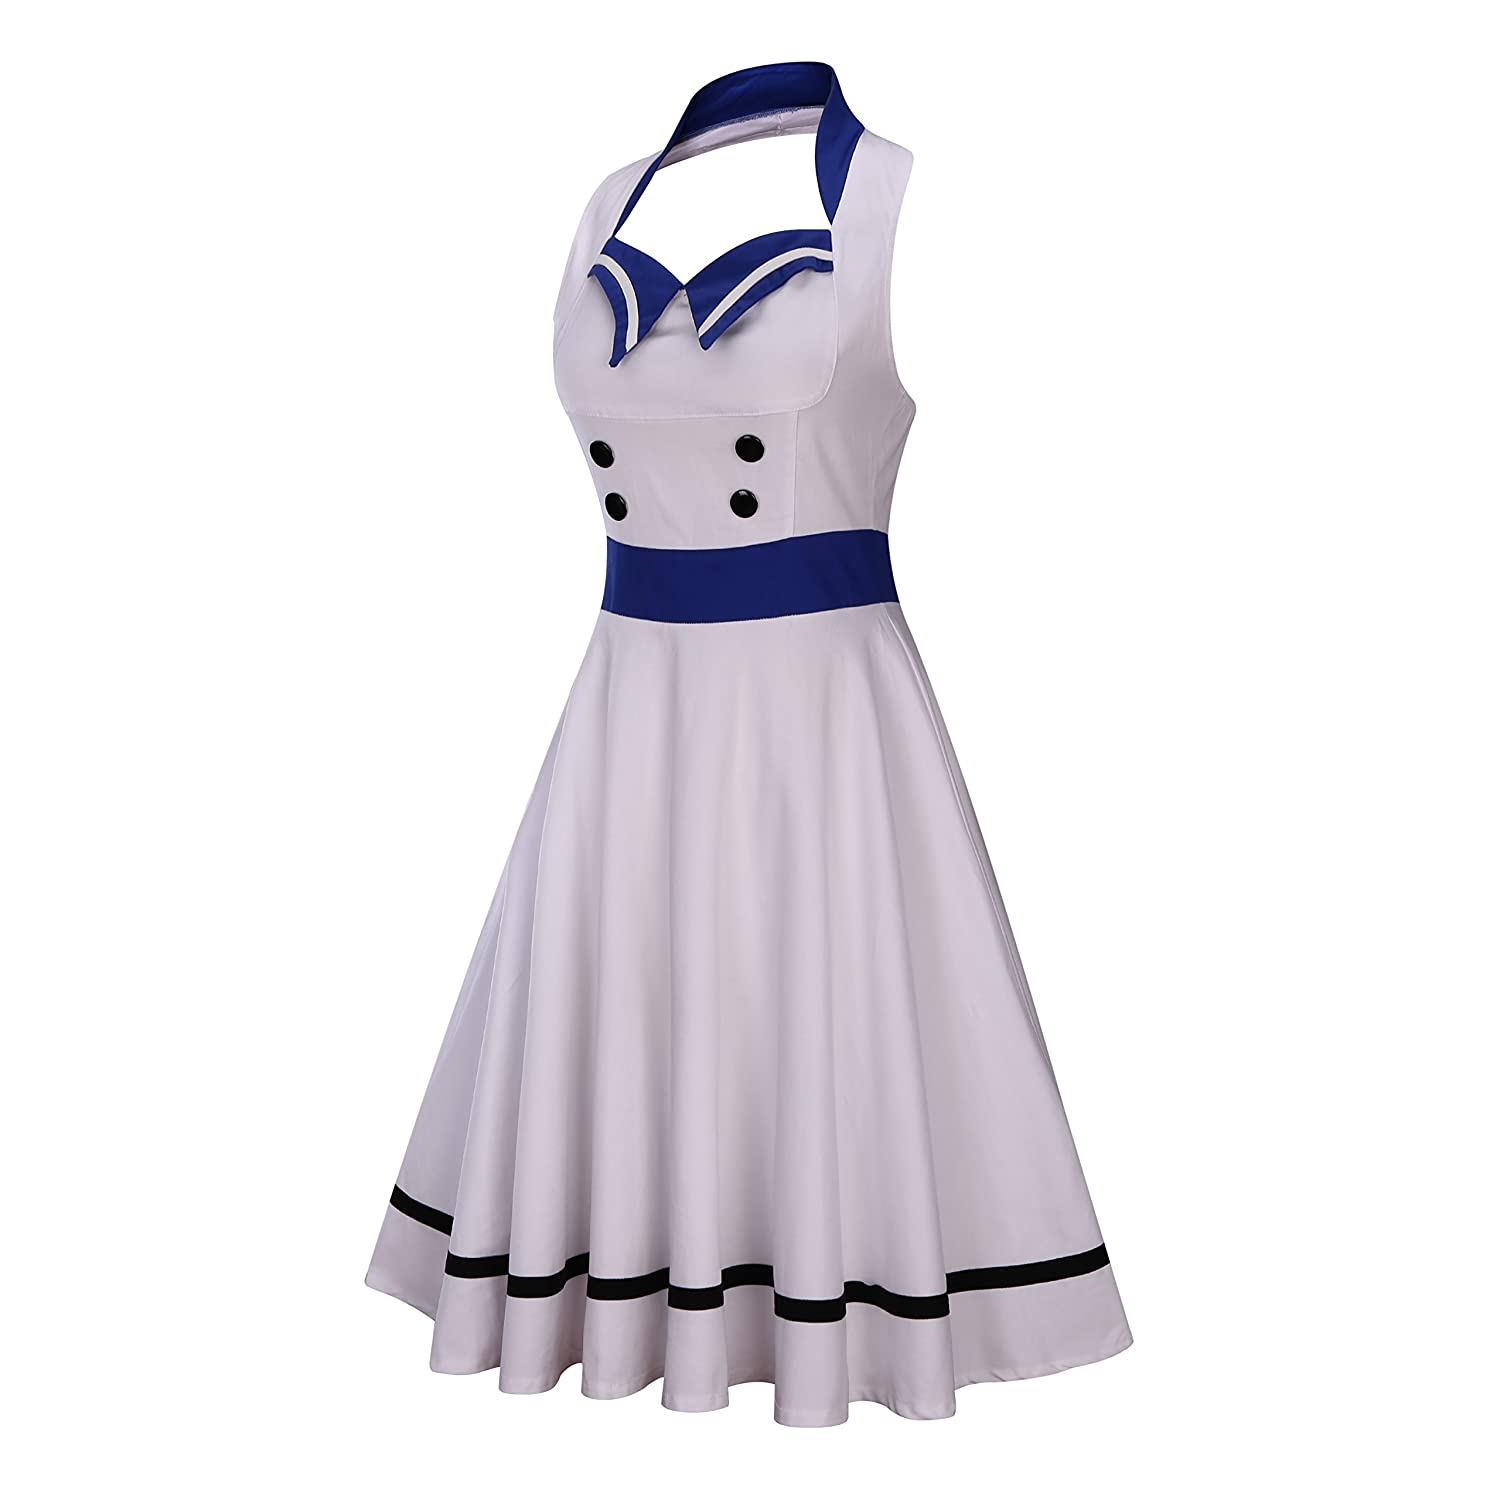 50s Costumes | 50s Halloween Costumes Wellwits Womens Vintage Pin Up Sailor Collar Halter Swing Dress $23.98 AT vintagedancer.com